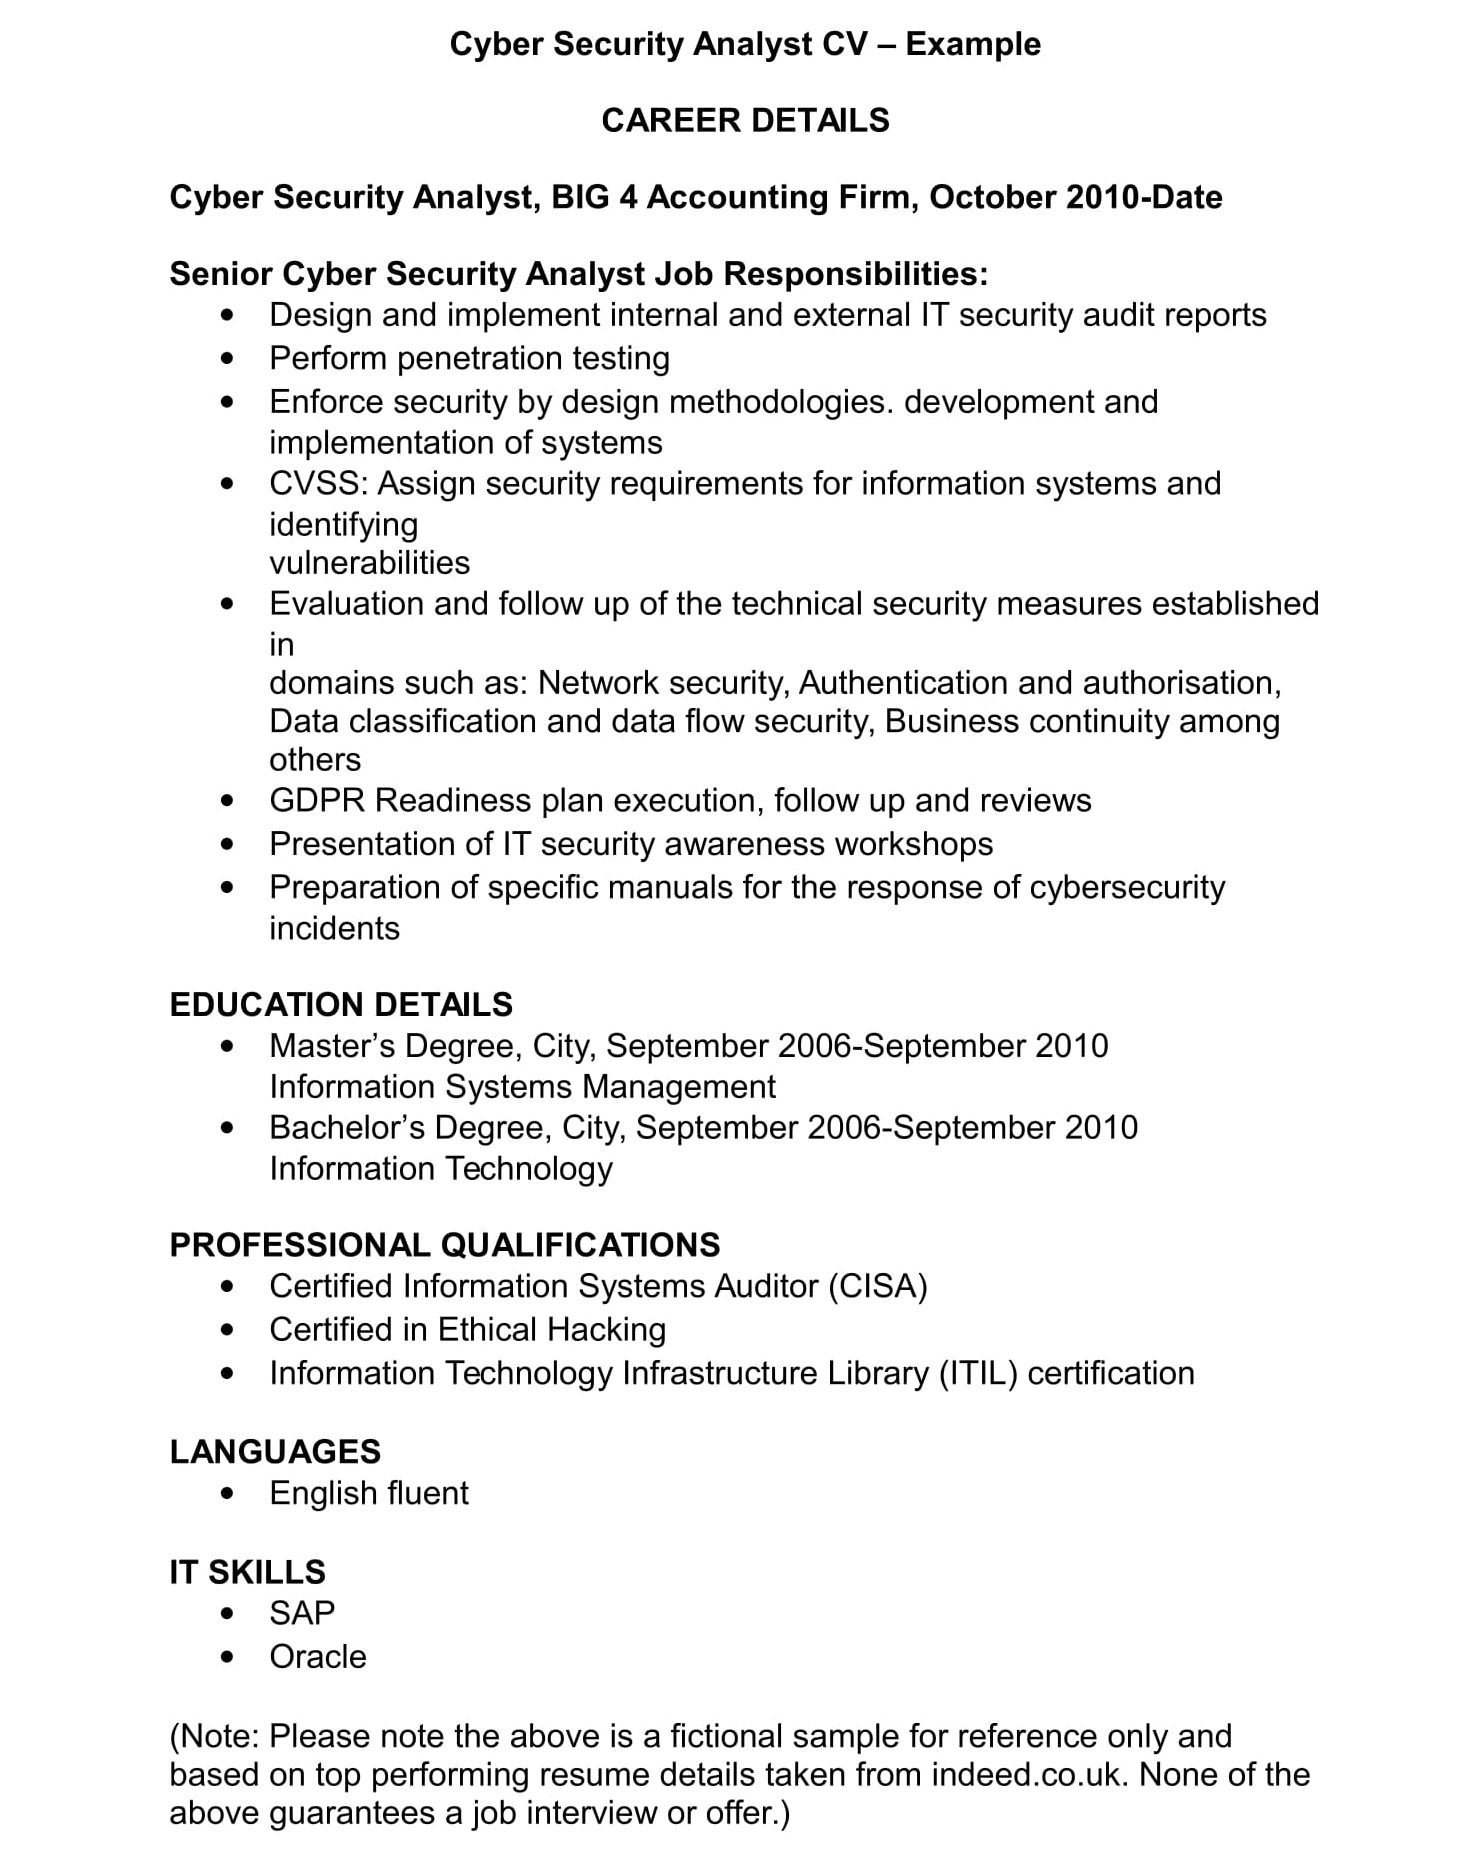 cyber security cv template and examples renaix cybersecurity resume sample analyst Resume Cybersecurity Resume Sample